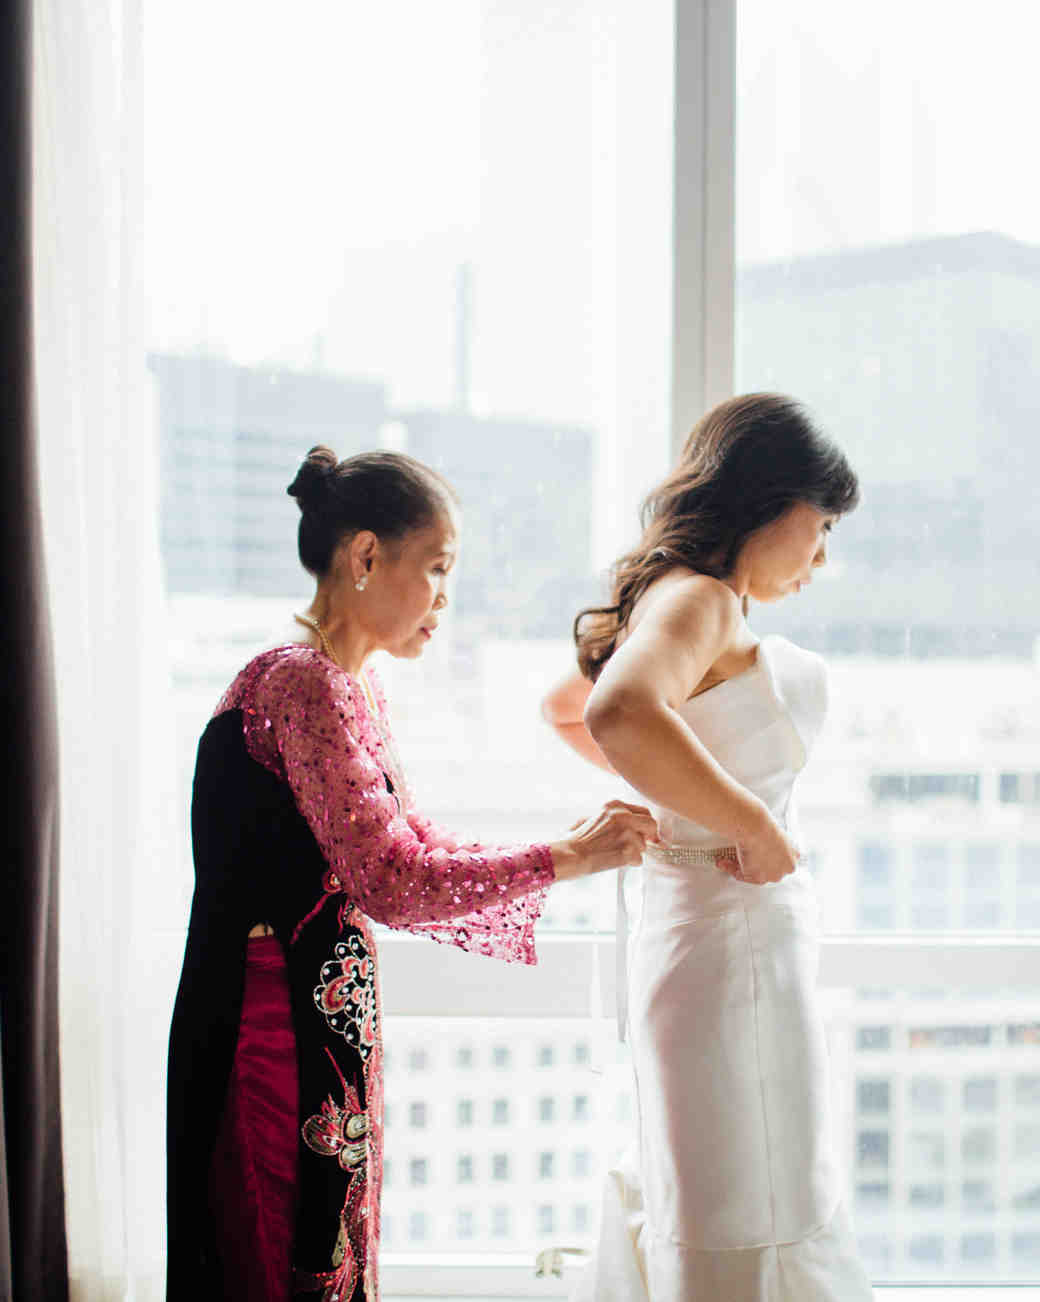 A Mother Zipping Up Her Daughter's Wedding Dress